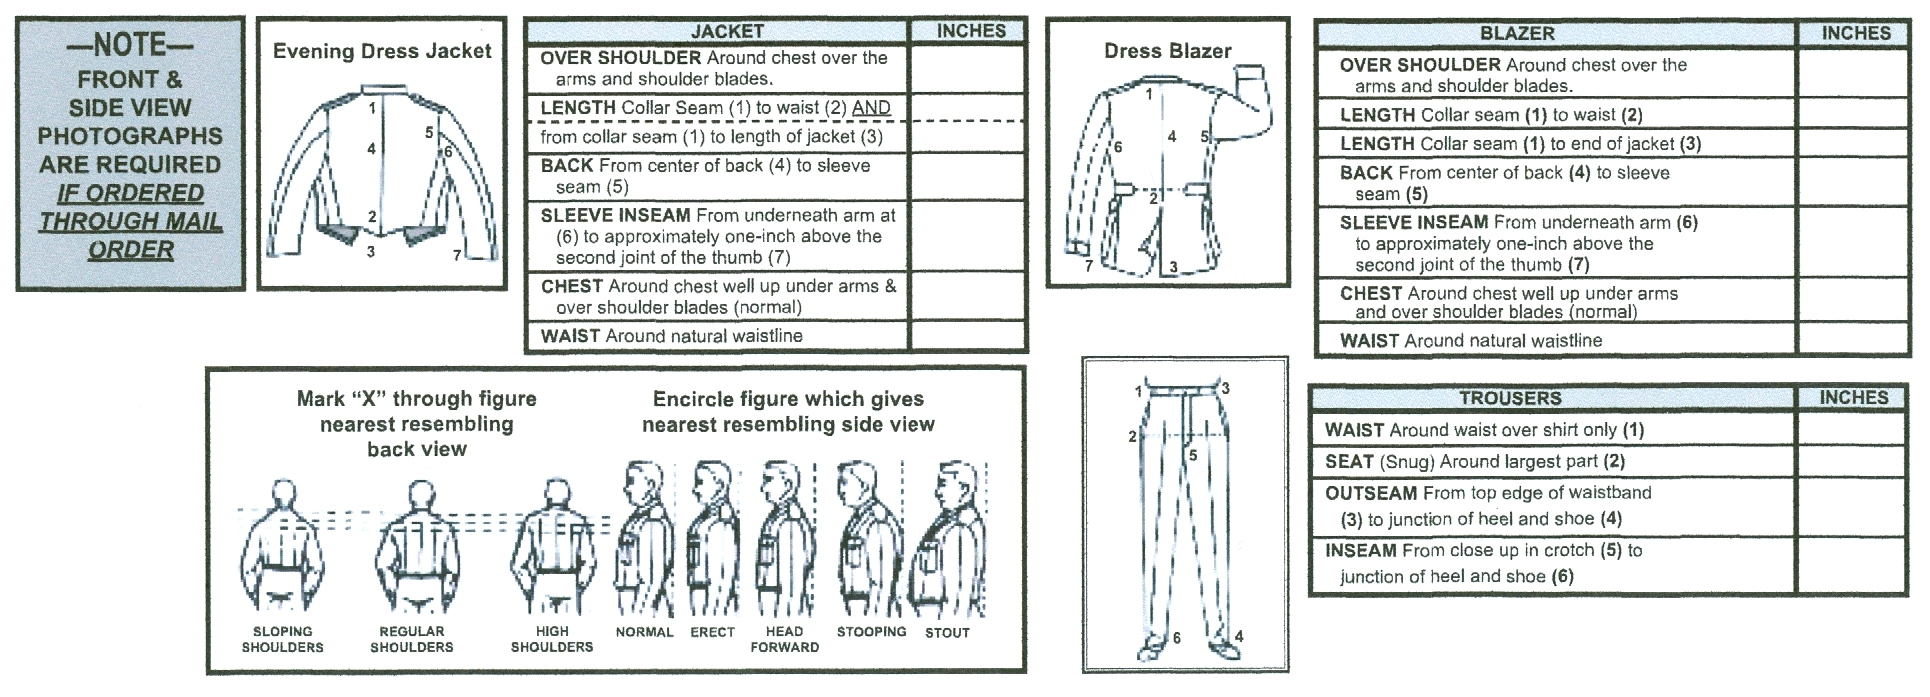 marine corps order p1020 Public web site for headquarters marine corps skip to  mco p102034g (ch 1-5) marine corps uniform  regs found directly above be used in lieu of this order.